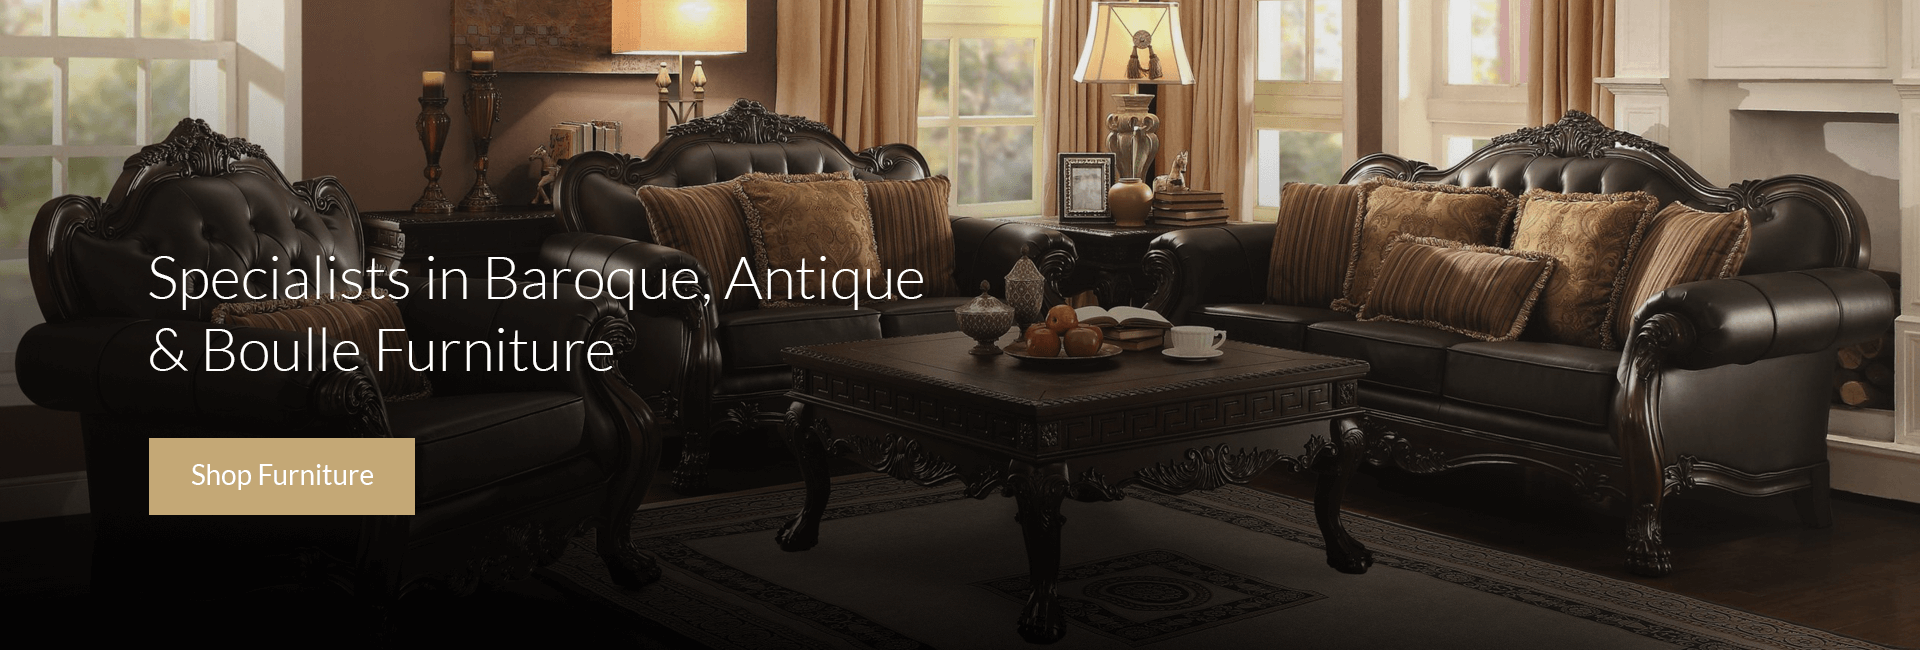 Specialists in Baroque, Antique & Boulle Furniture